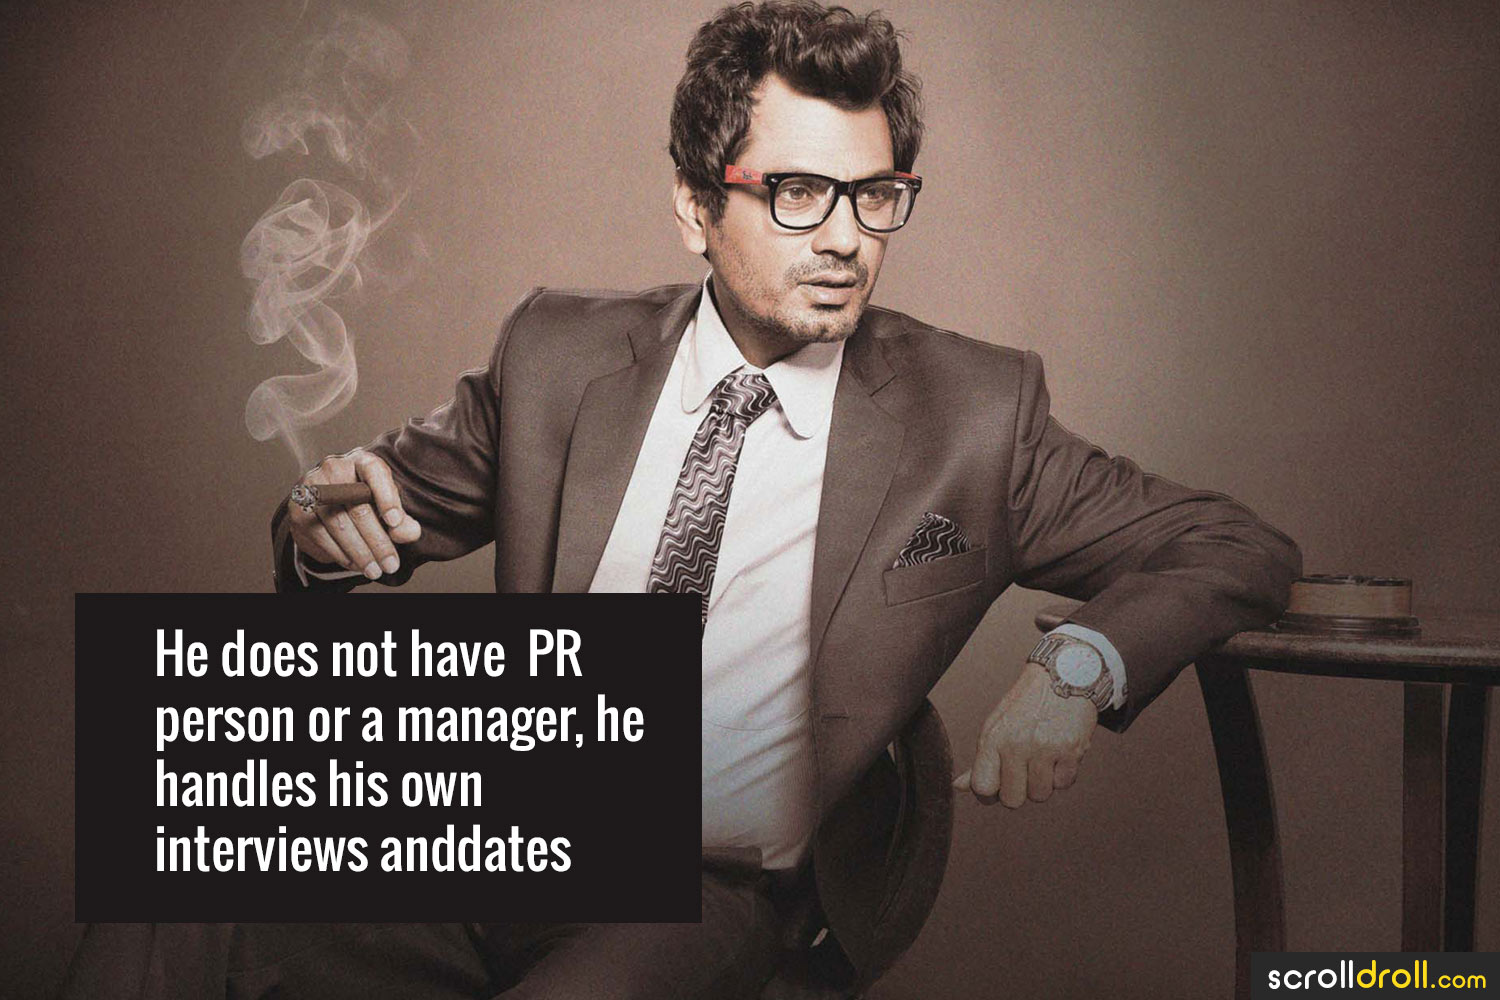 Facts about Nawazuddin Siddique-He does not have PR person or a manager,he handles his own interviews anddates